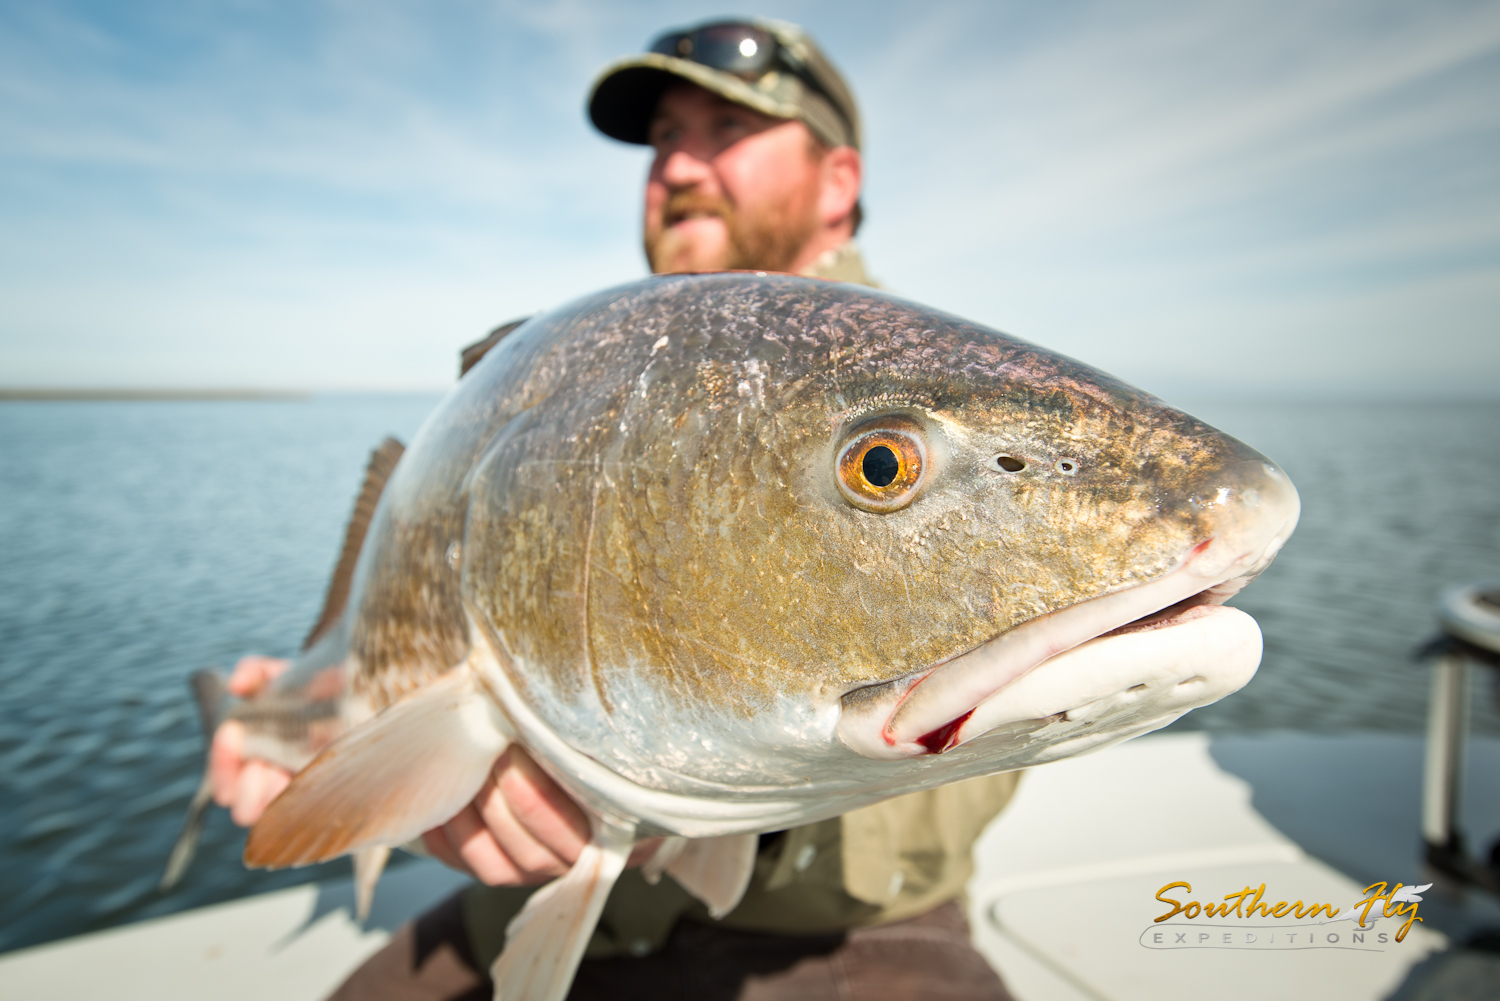 Fly Fishing New Orleans by Southern Fly Expeditions